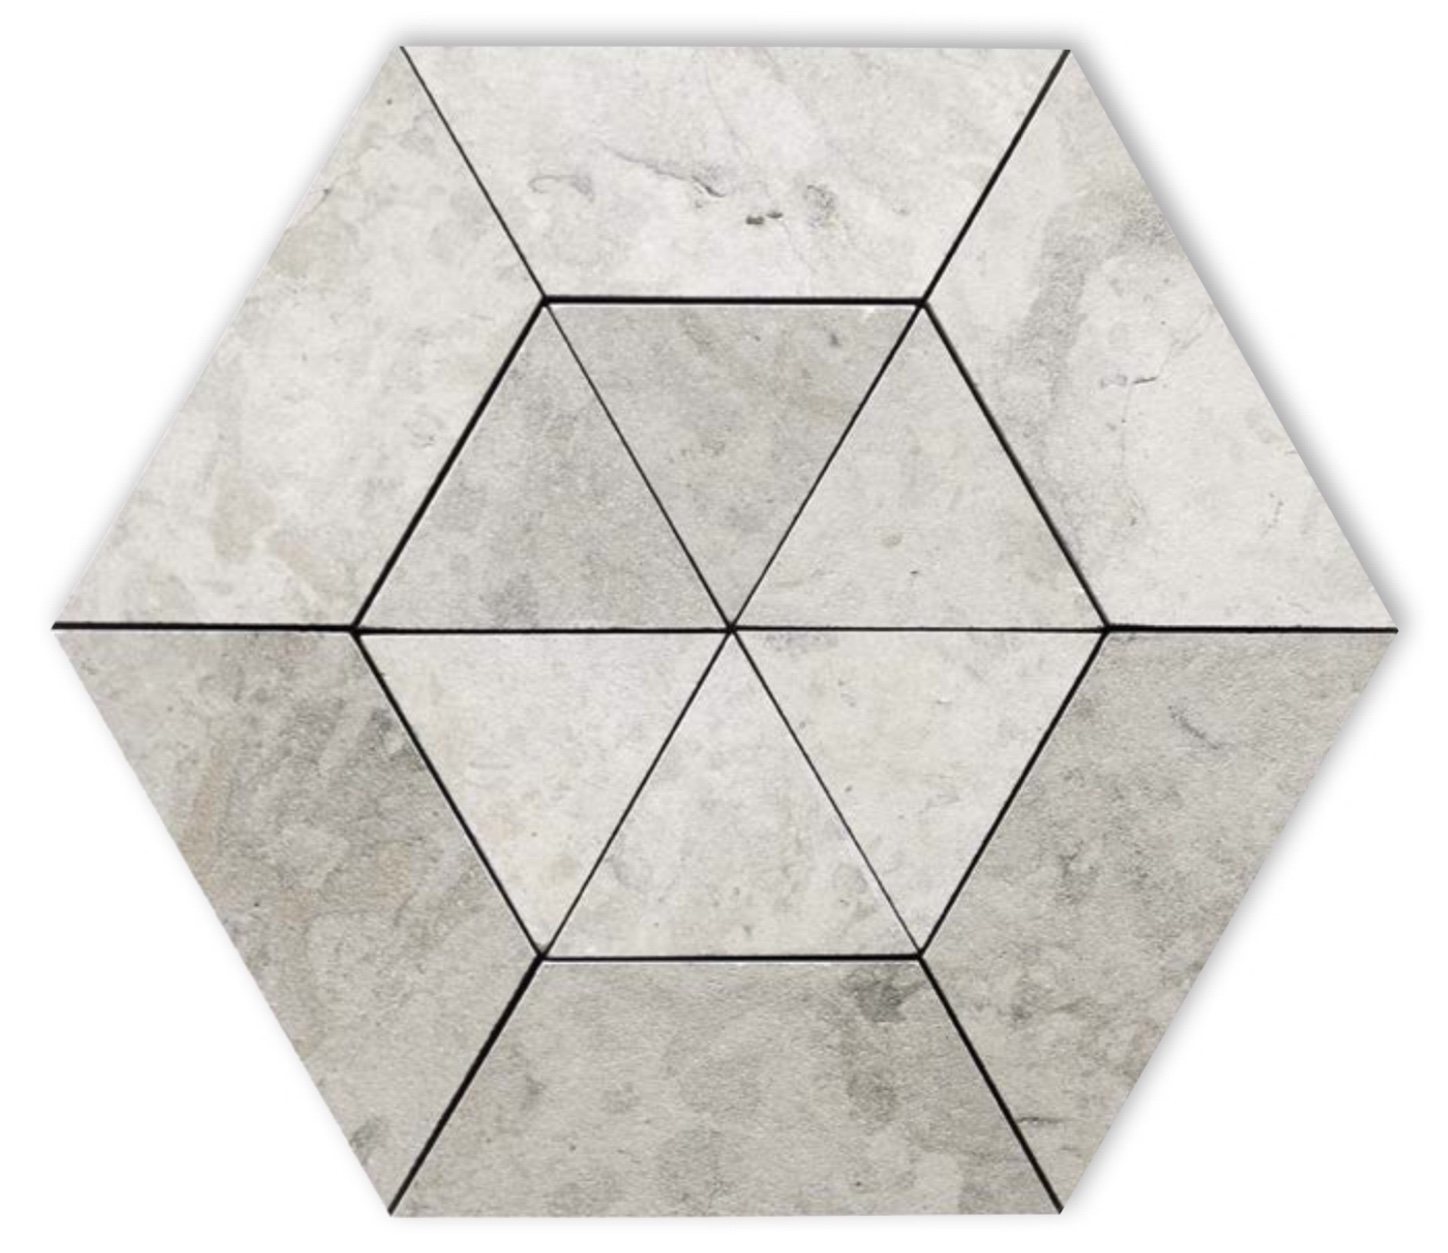 Natural Stone Geometric Shapes